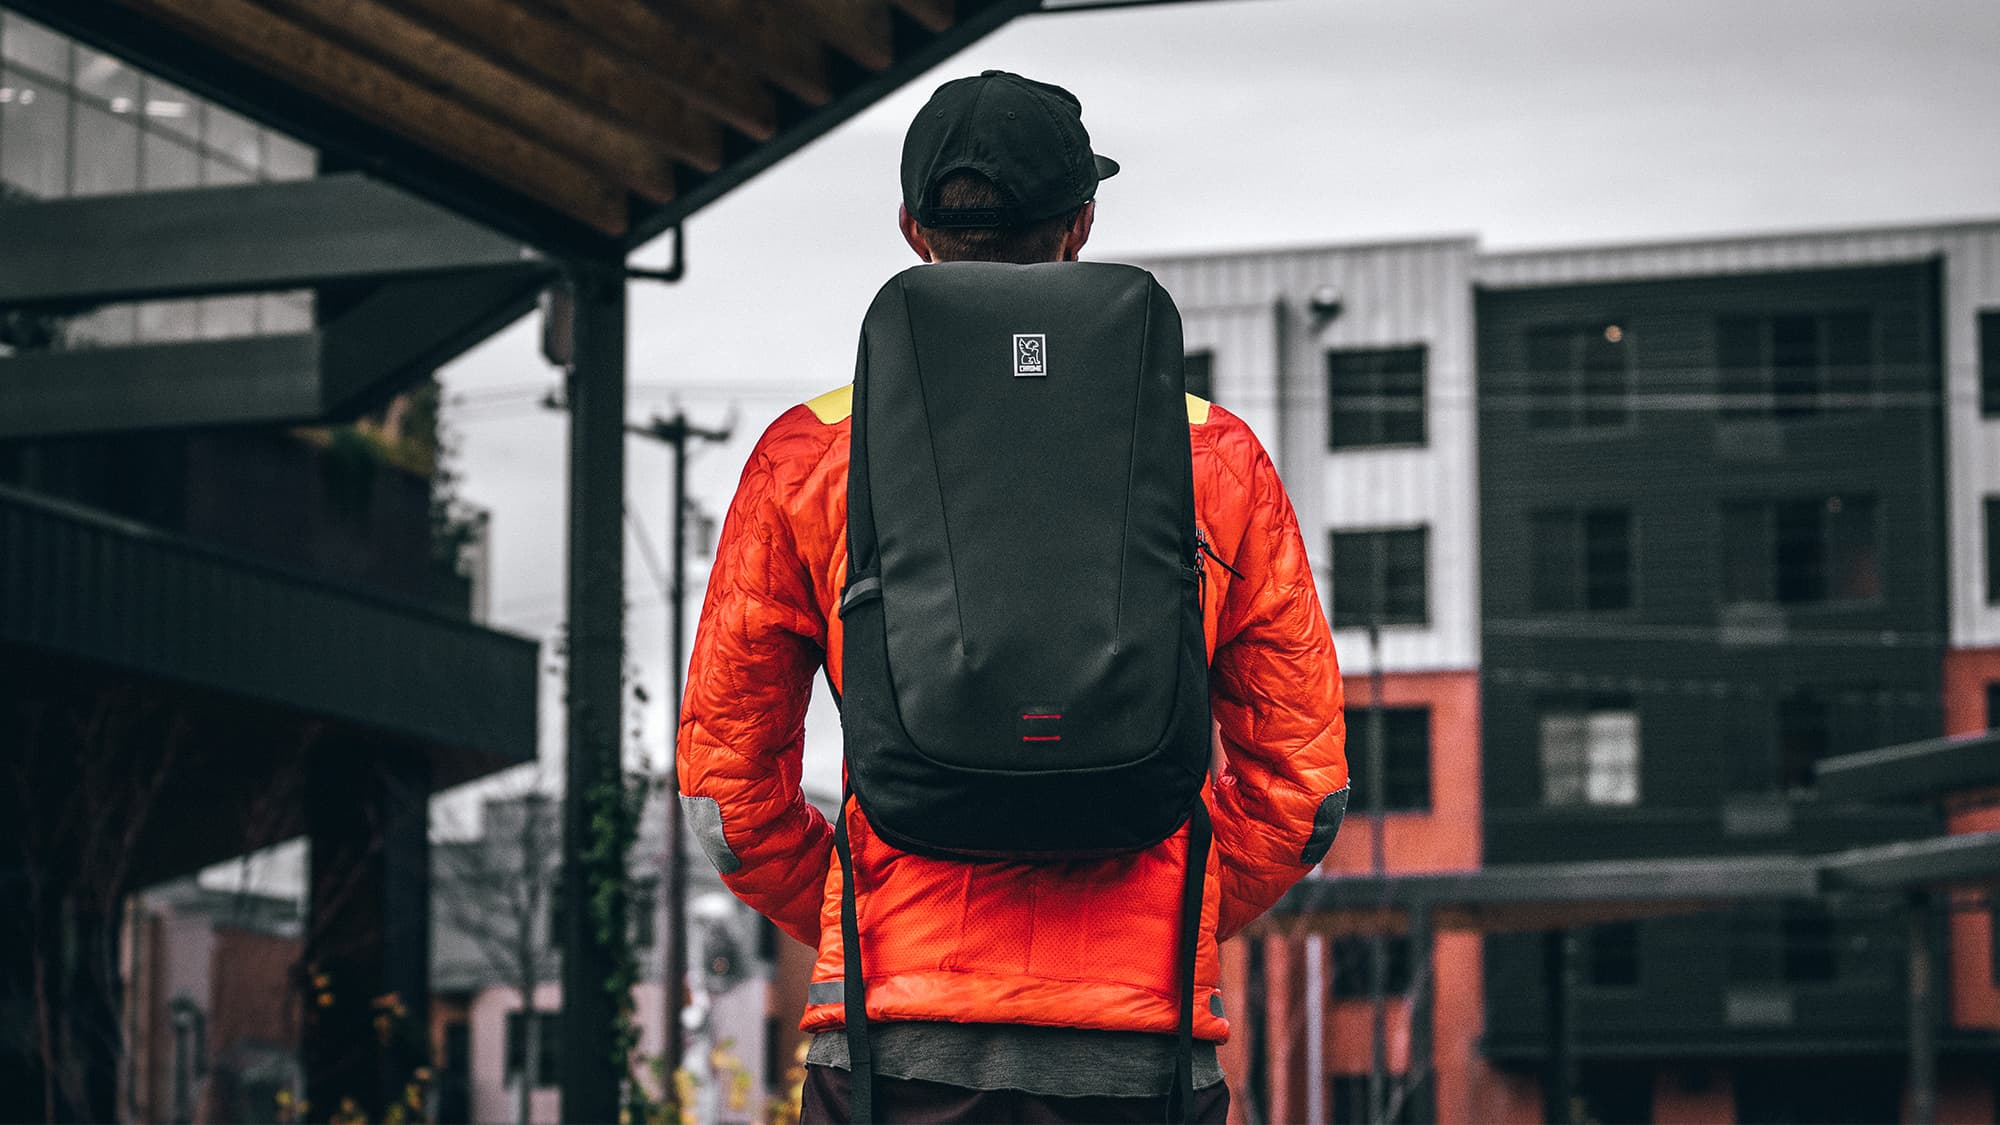 the Avail Backpack is a great everyday carry